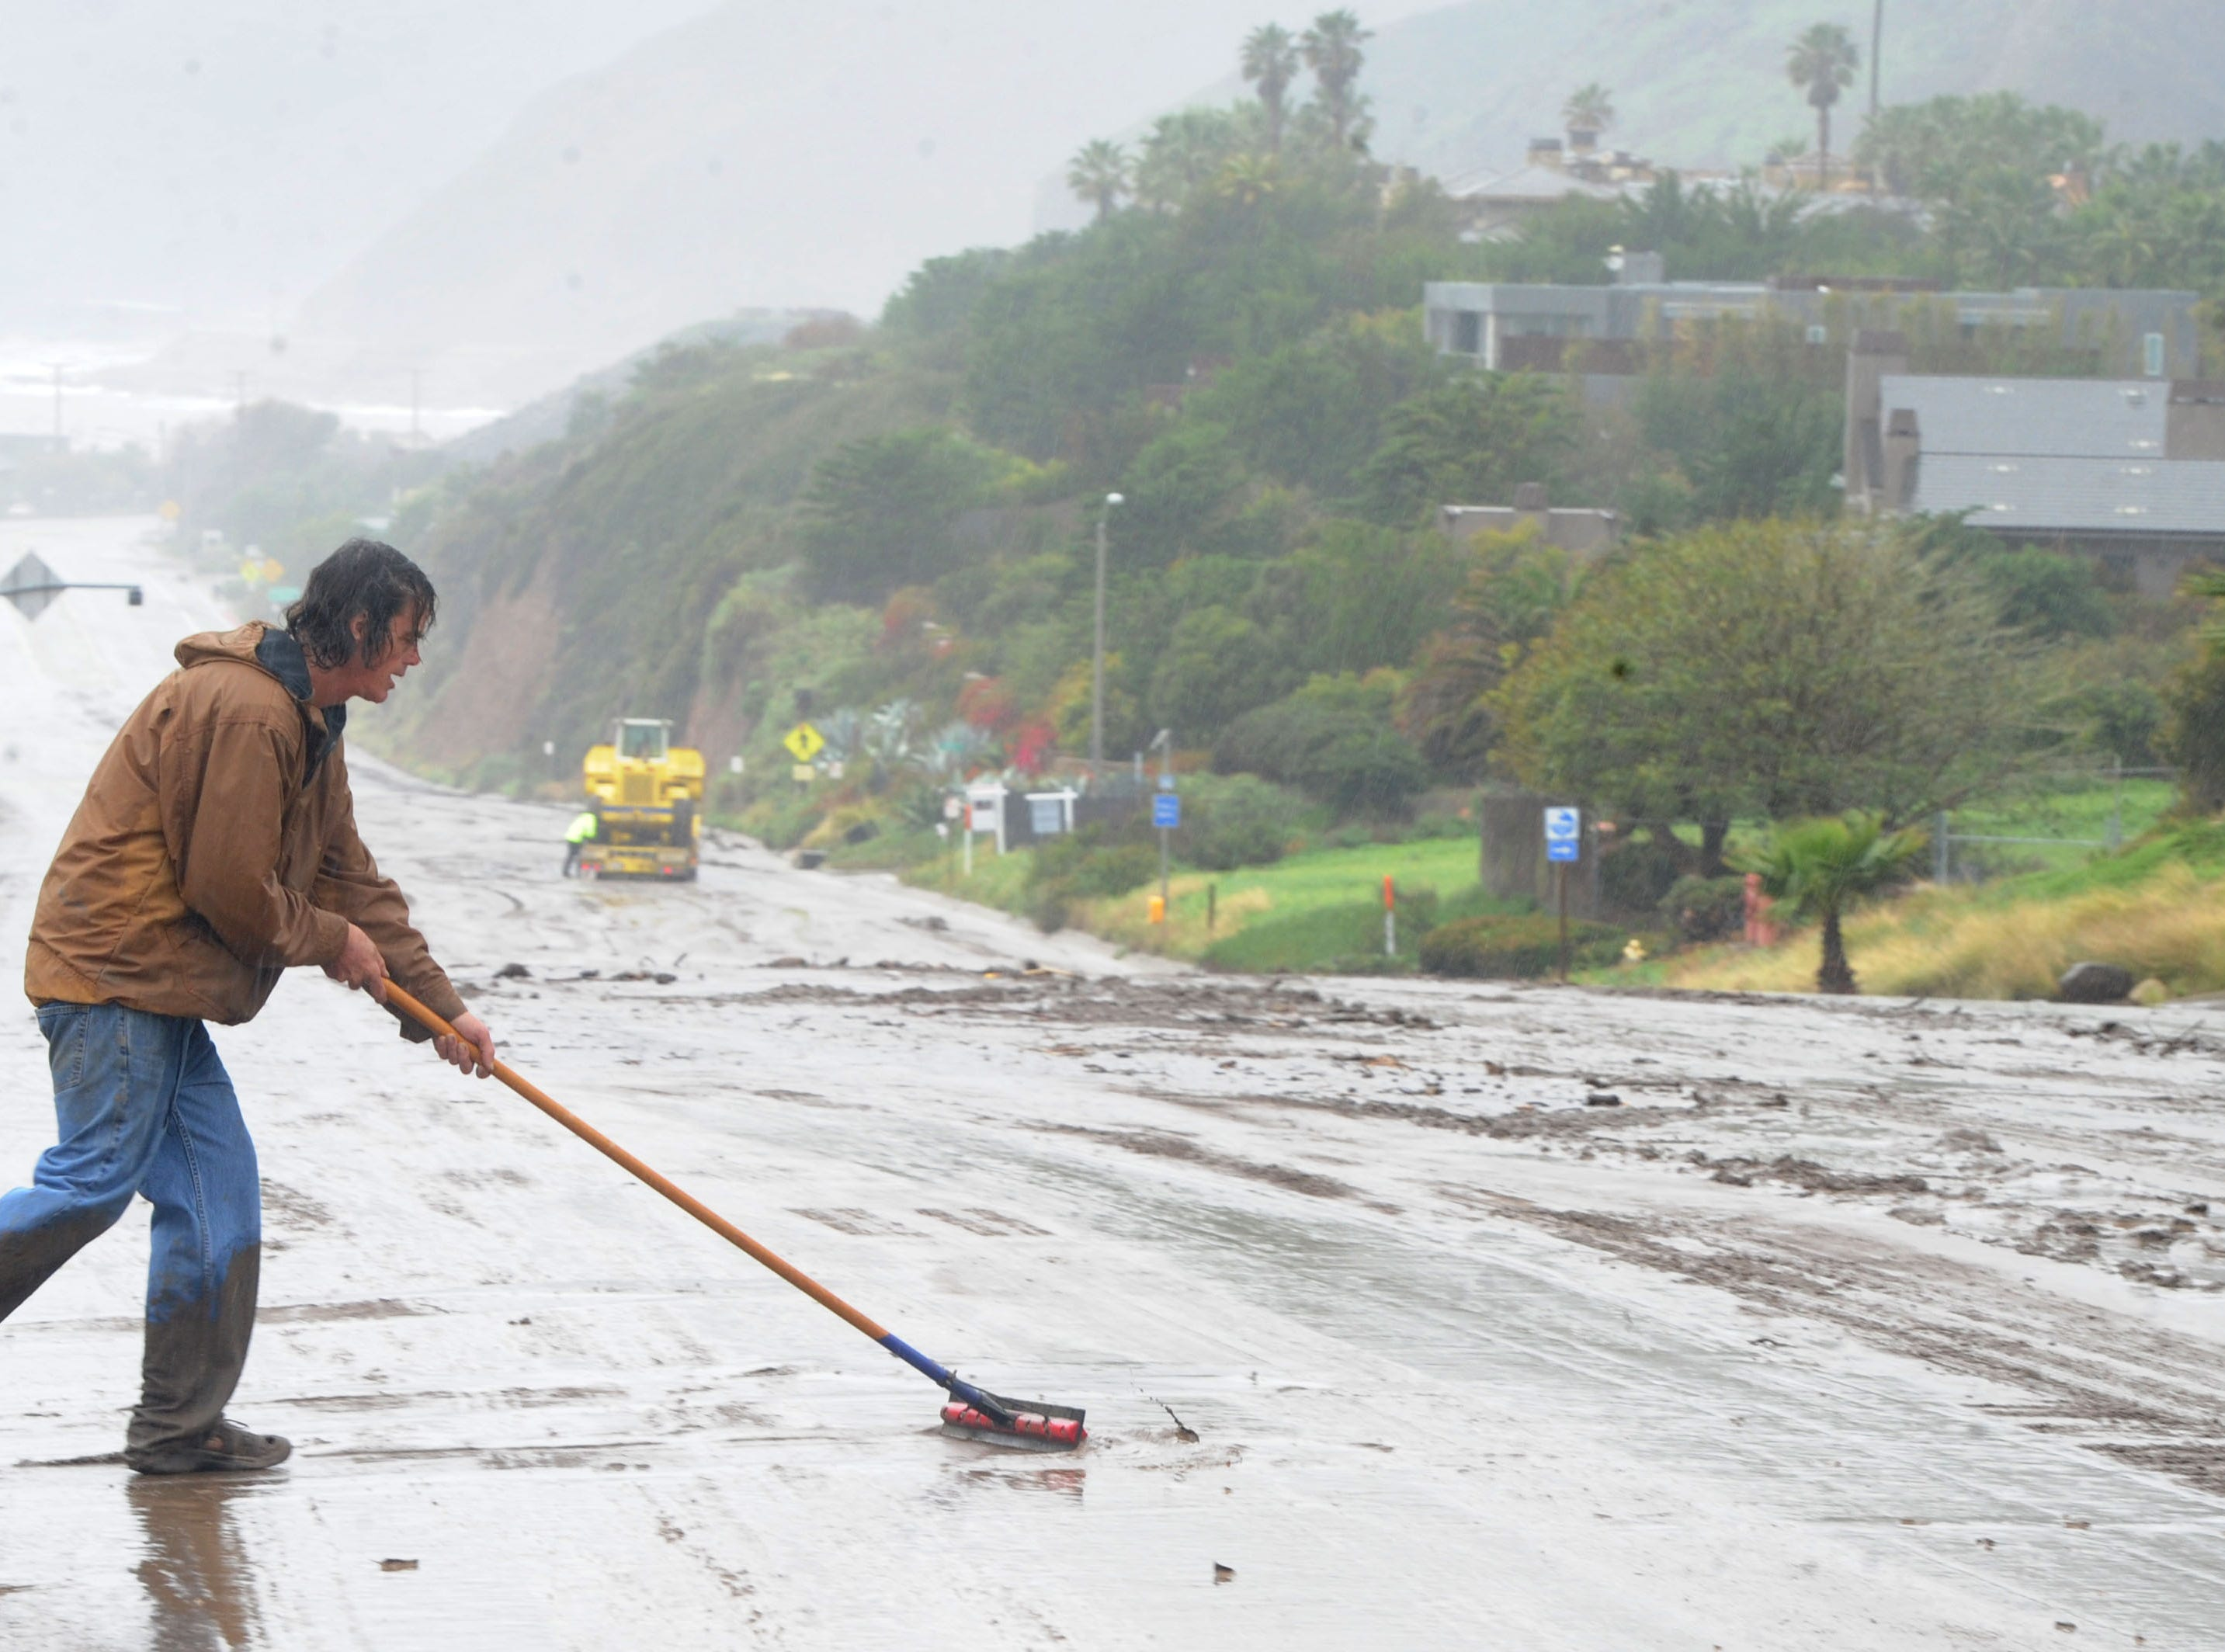 Bud Robison, employed by the Malibu Bay Club, cleans mud from the entrance along Pacific Coast Highway on Saturday after a storm moved through.